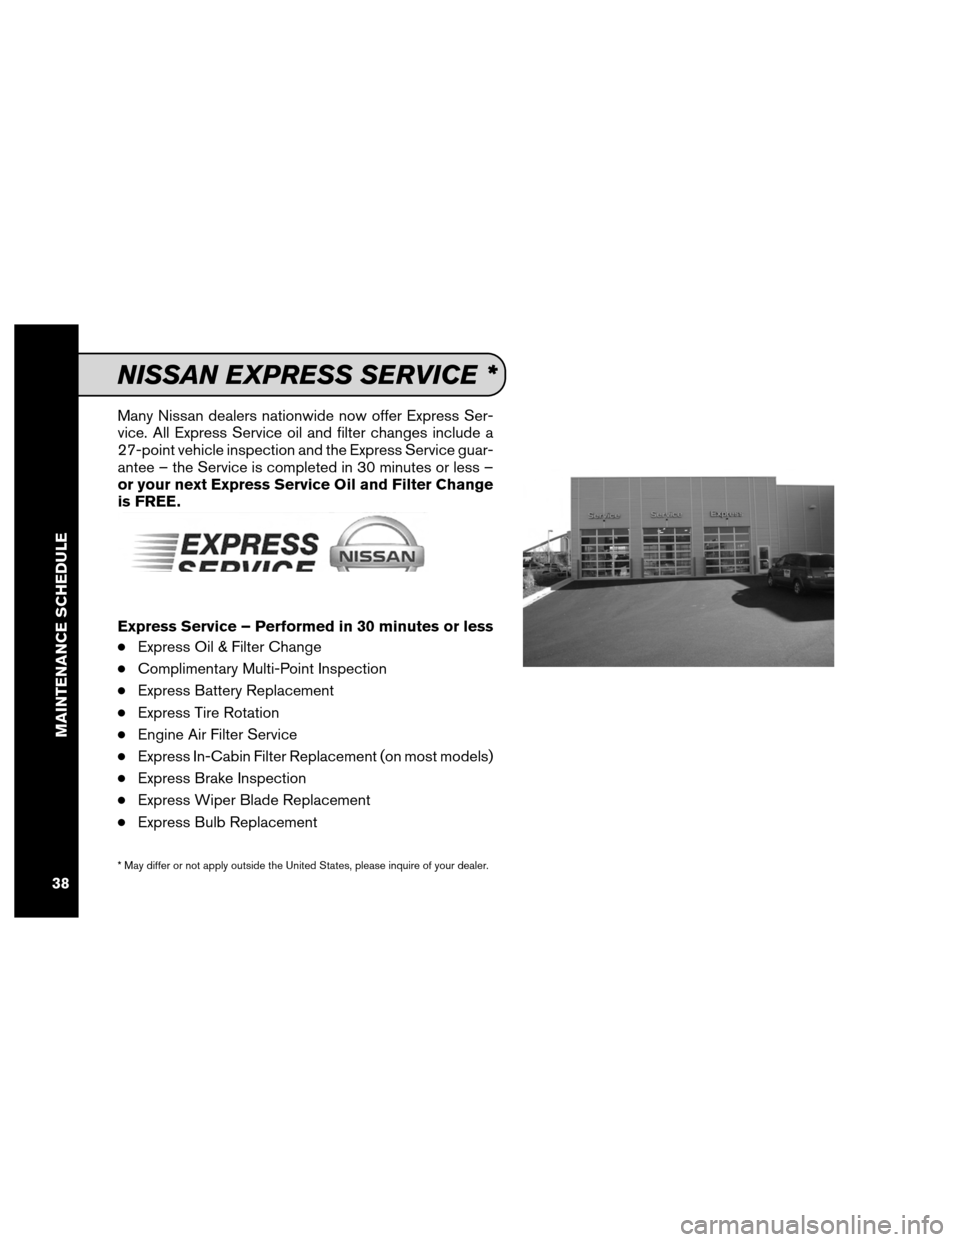 NISSAN SENTRA 2012 B16 / 6.G Service And Maintenance Guide Many Nissan dealers nationwide now offer Express Ser- vice. All Express Service oil and filter changes include a 27-point vehicle inspection and the Express Service guar- antee – the Service is comp